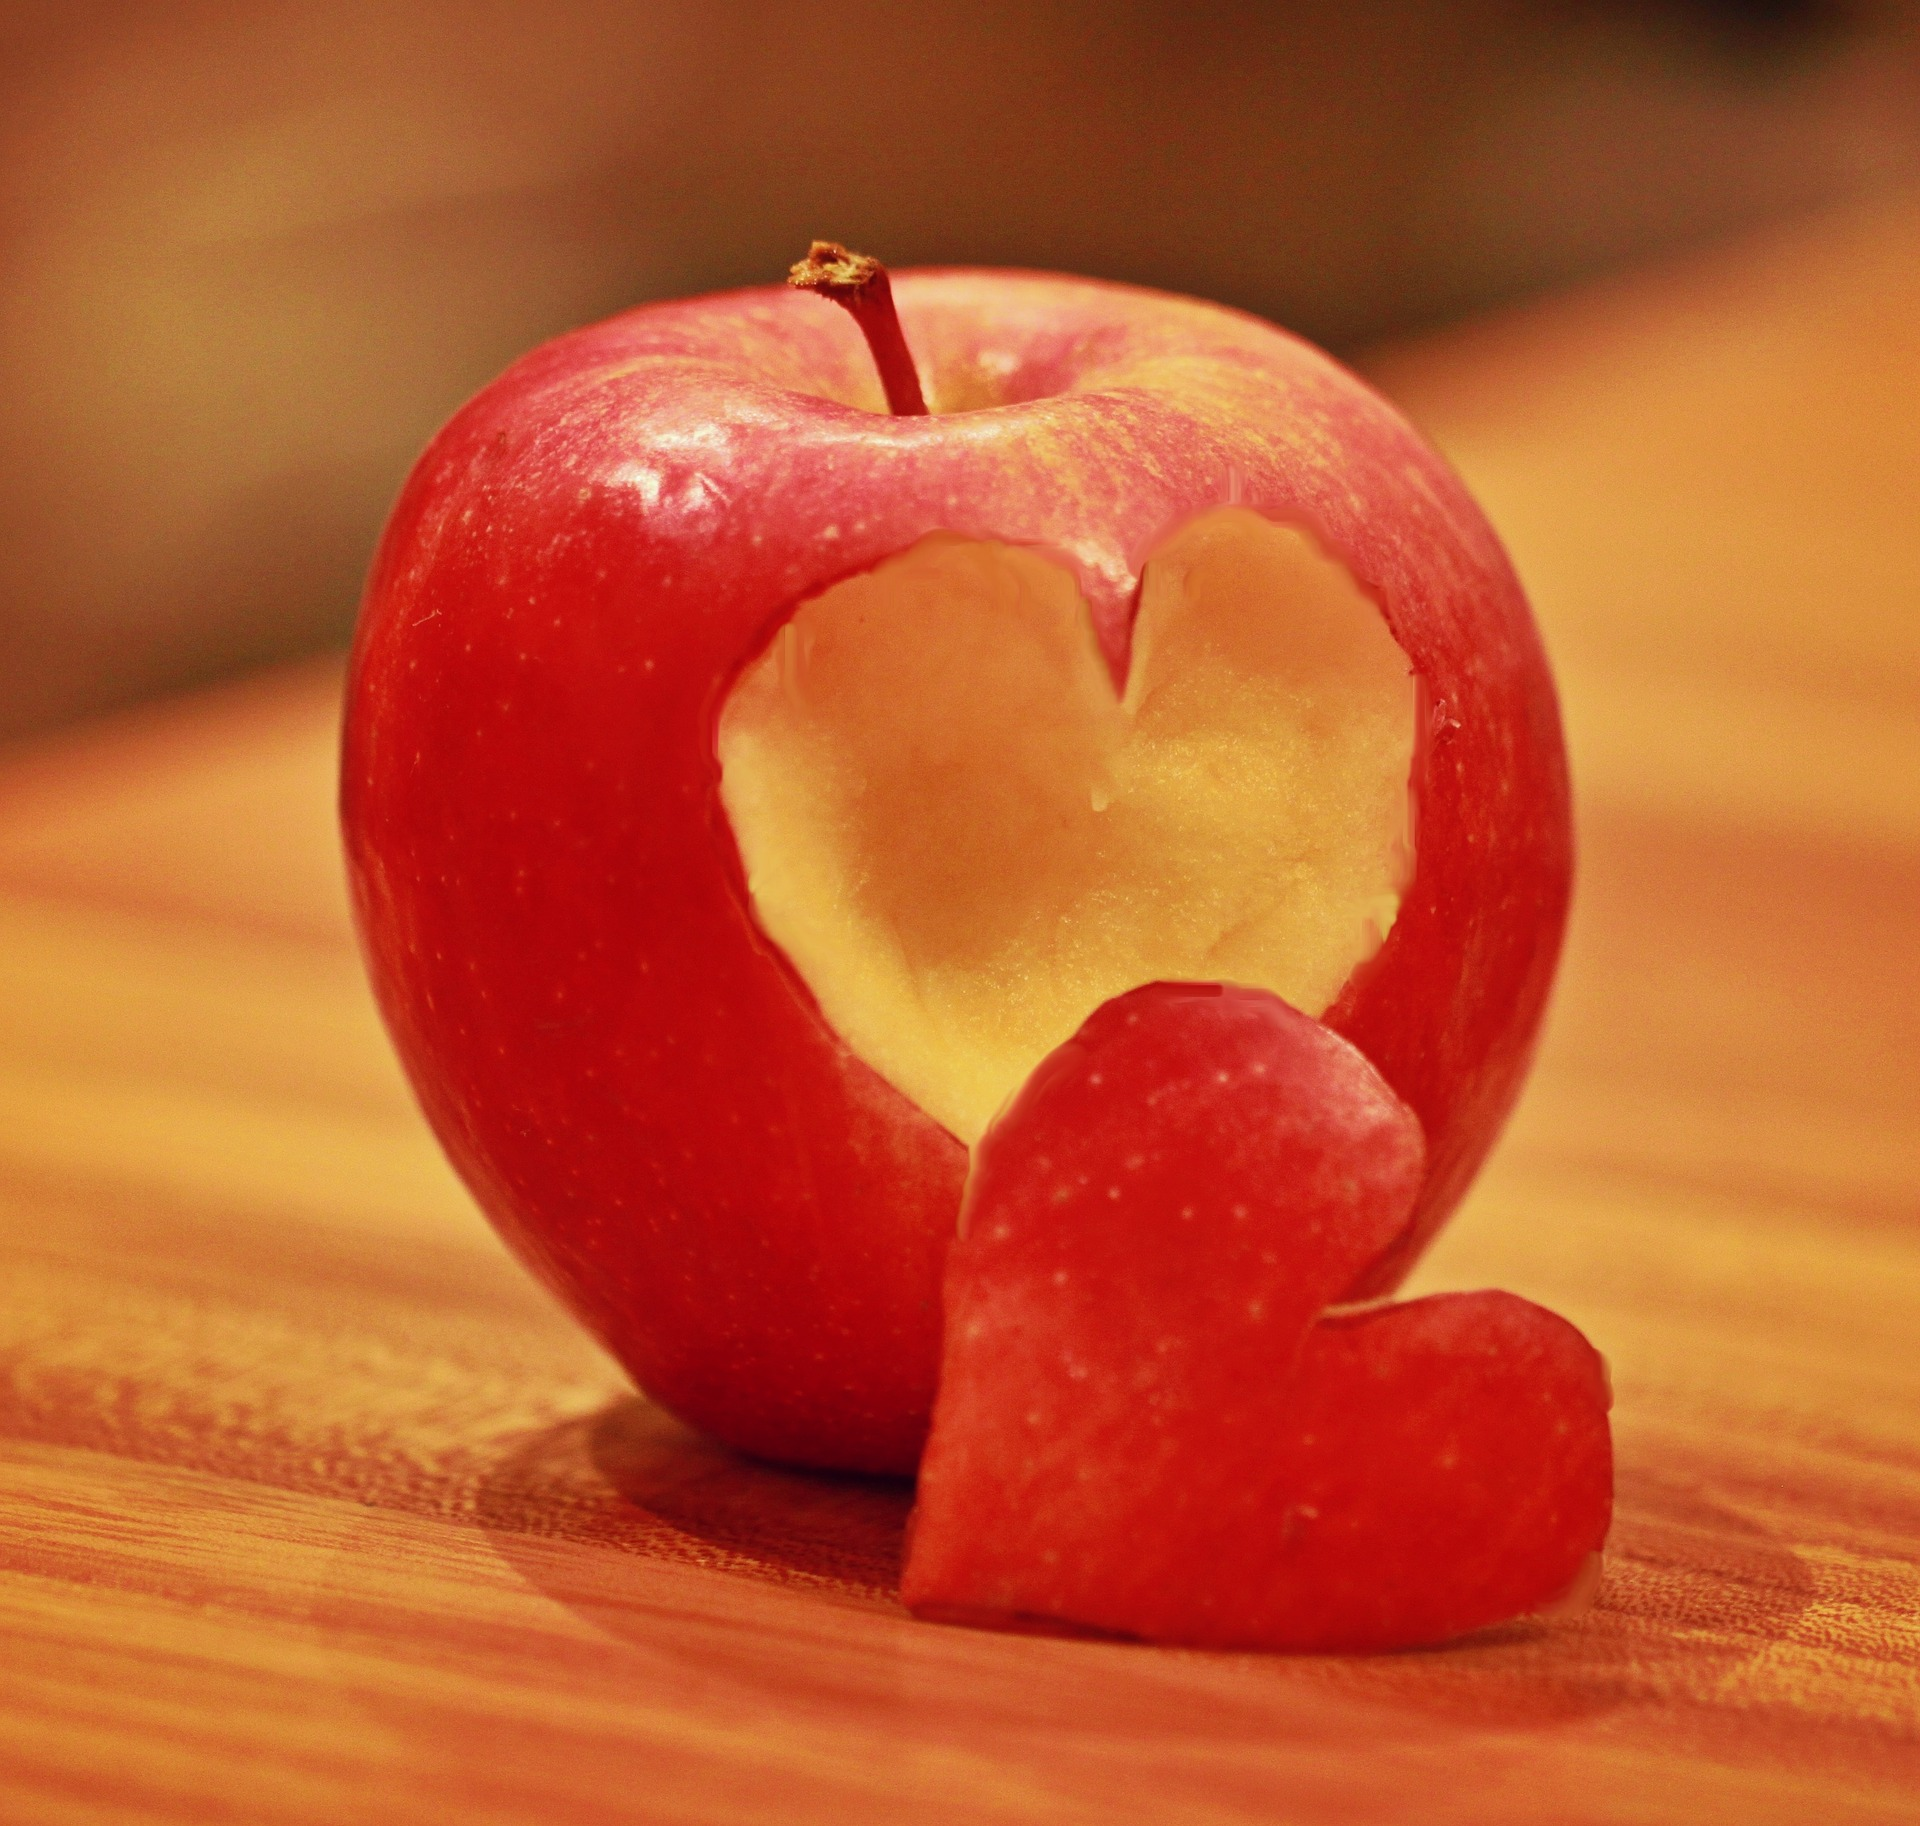 Image of an apple